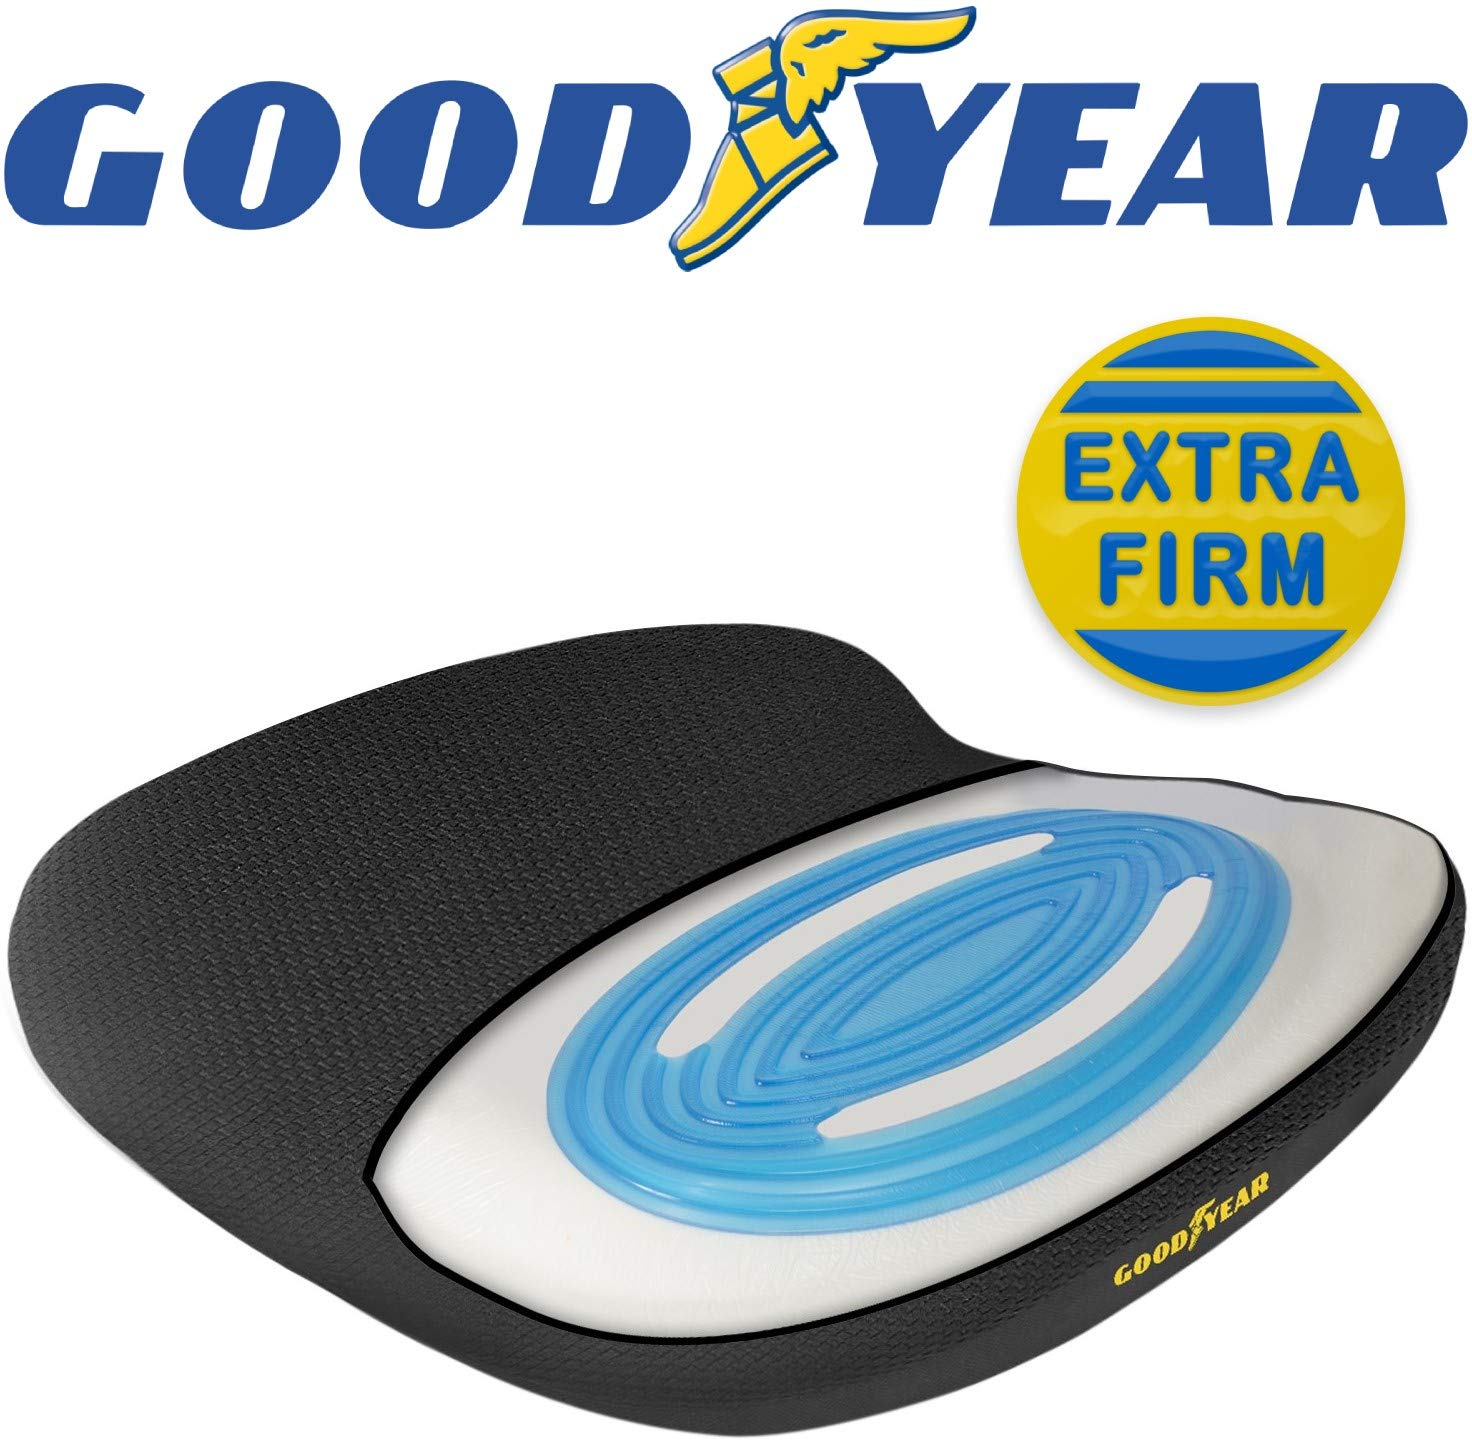 Goodyear GY1143 Extra Firm Seat Cushion with Gel Office, Car, SUV